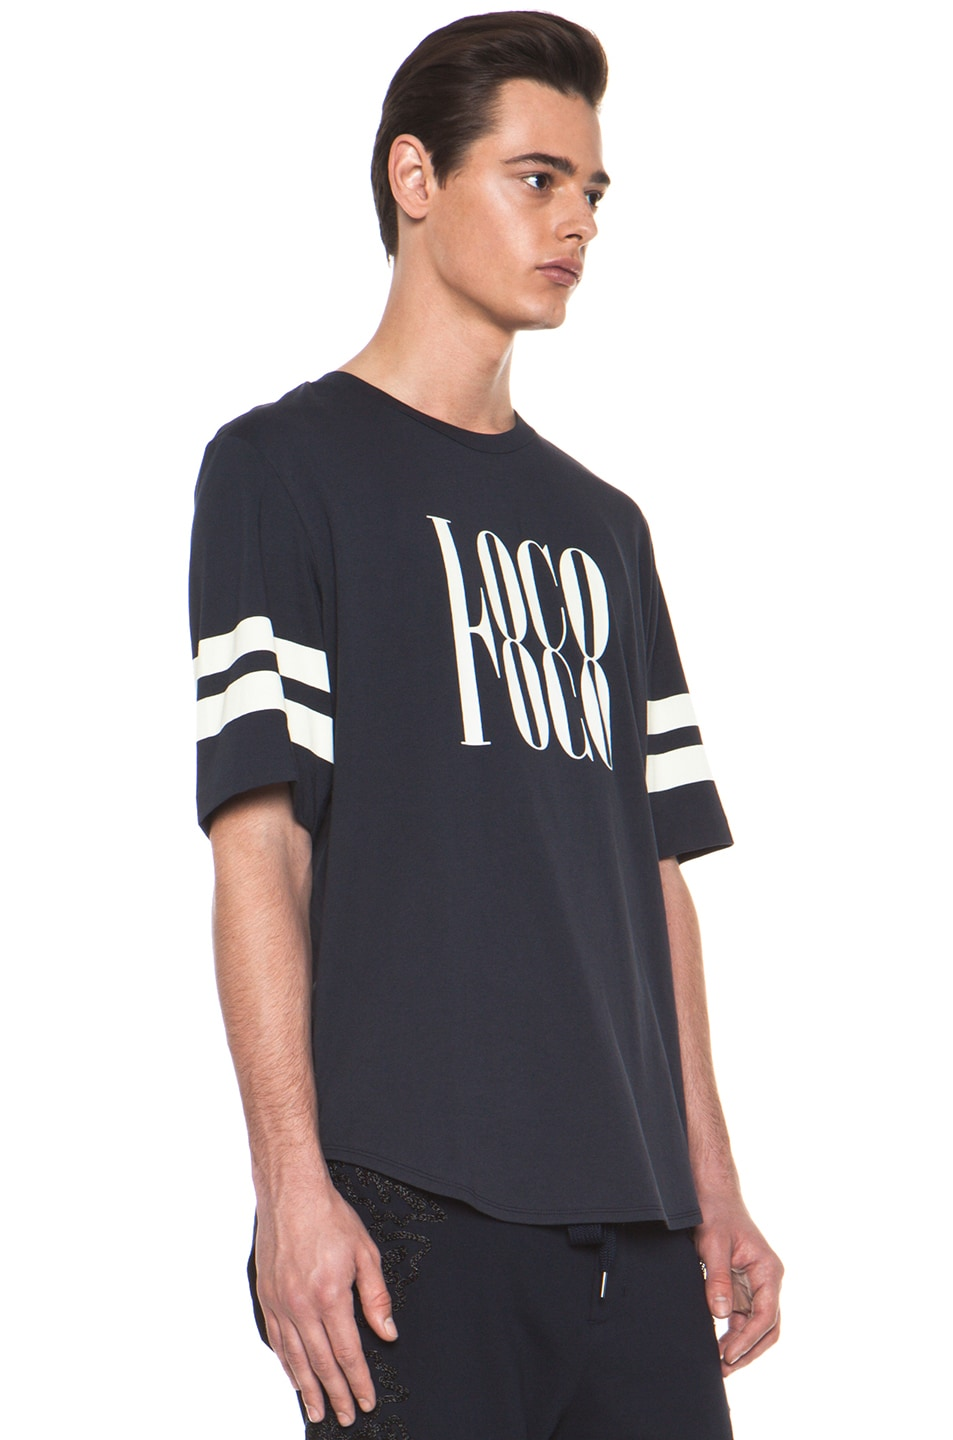 Image 3 of 3.1 phillip lim 'Loco' Tee in Midnight